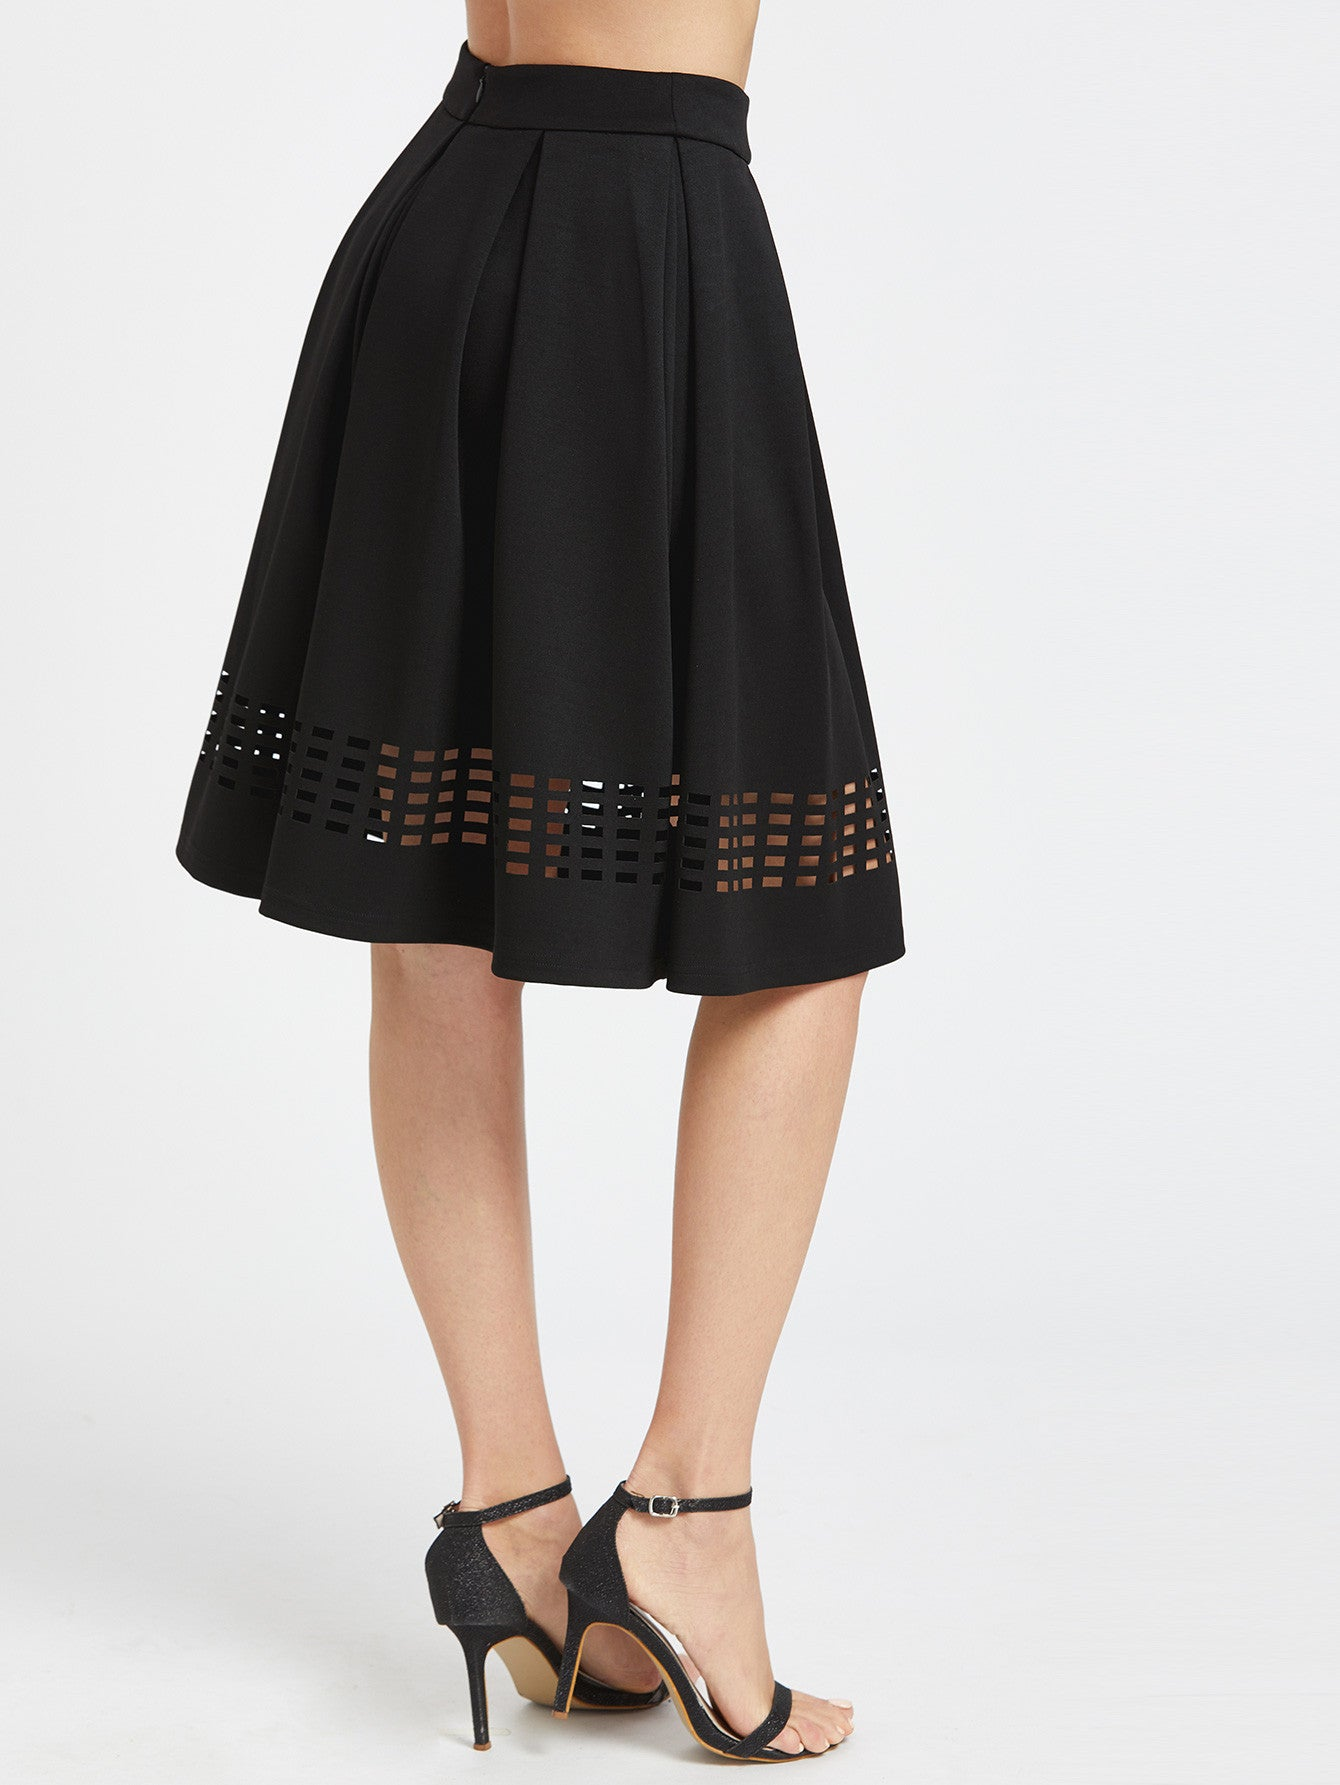 Laser Cutout Hem Box Pleated Skirt